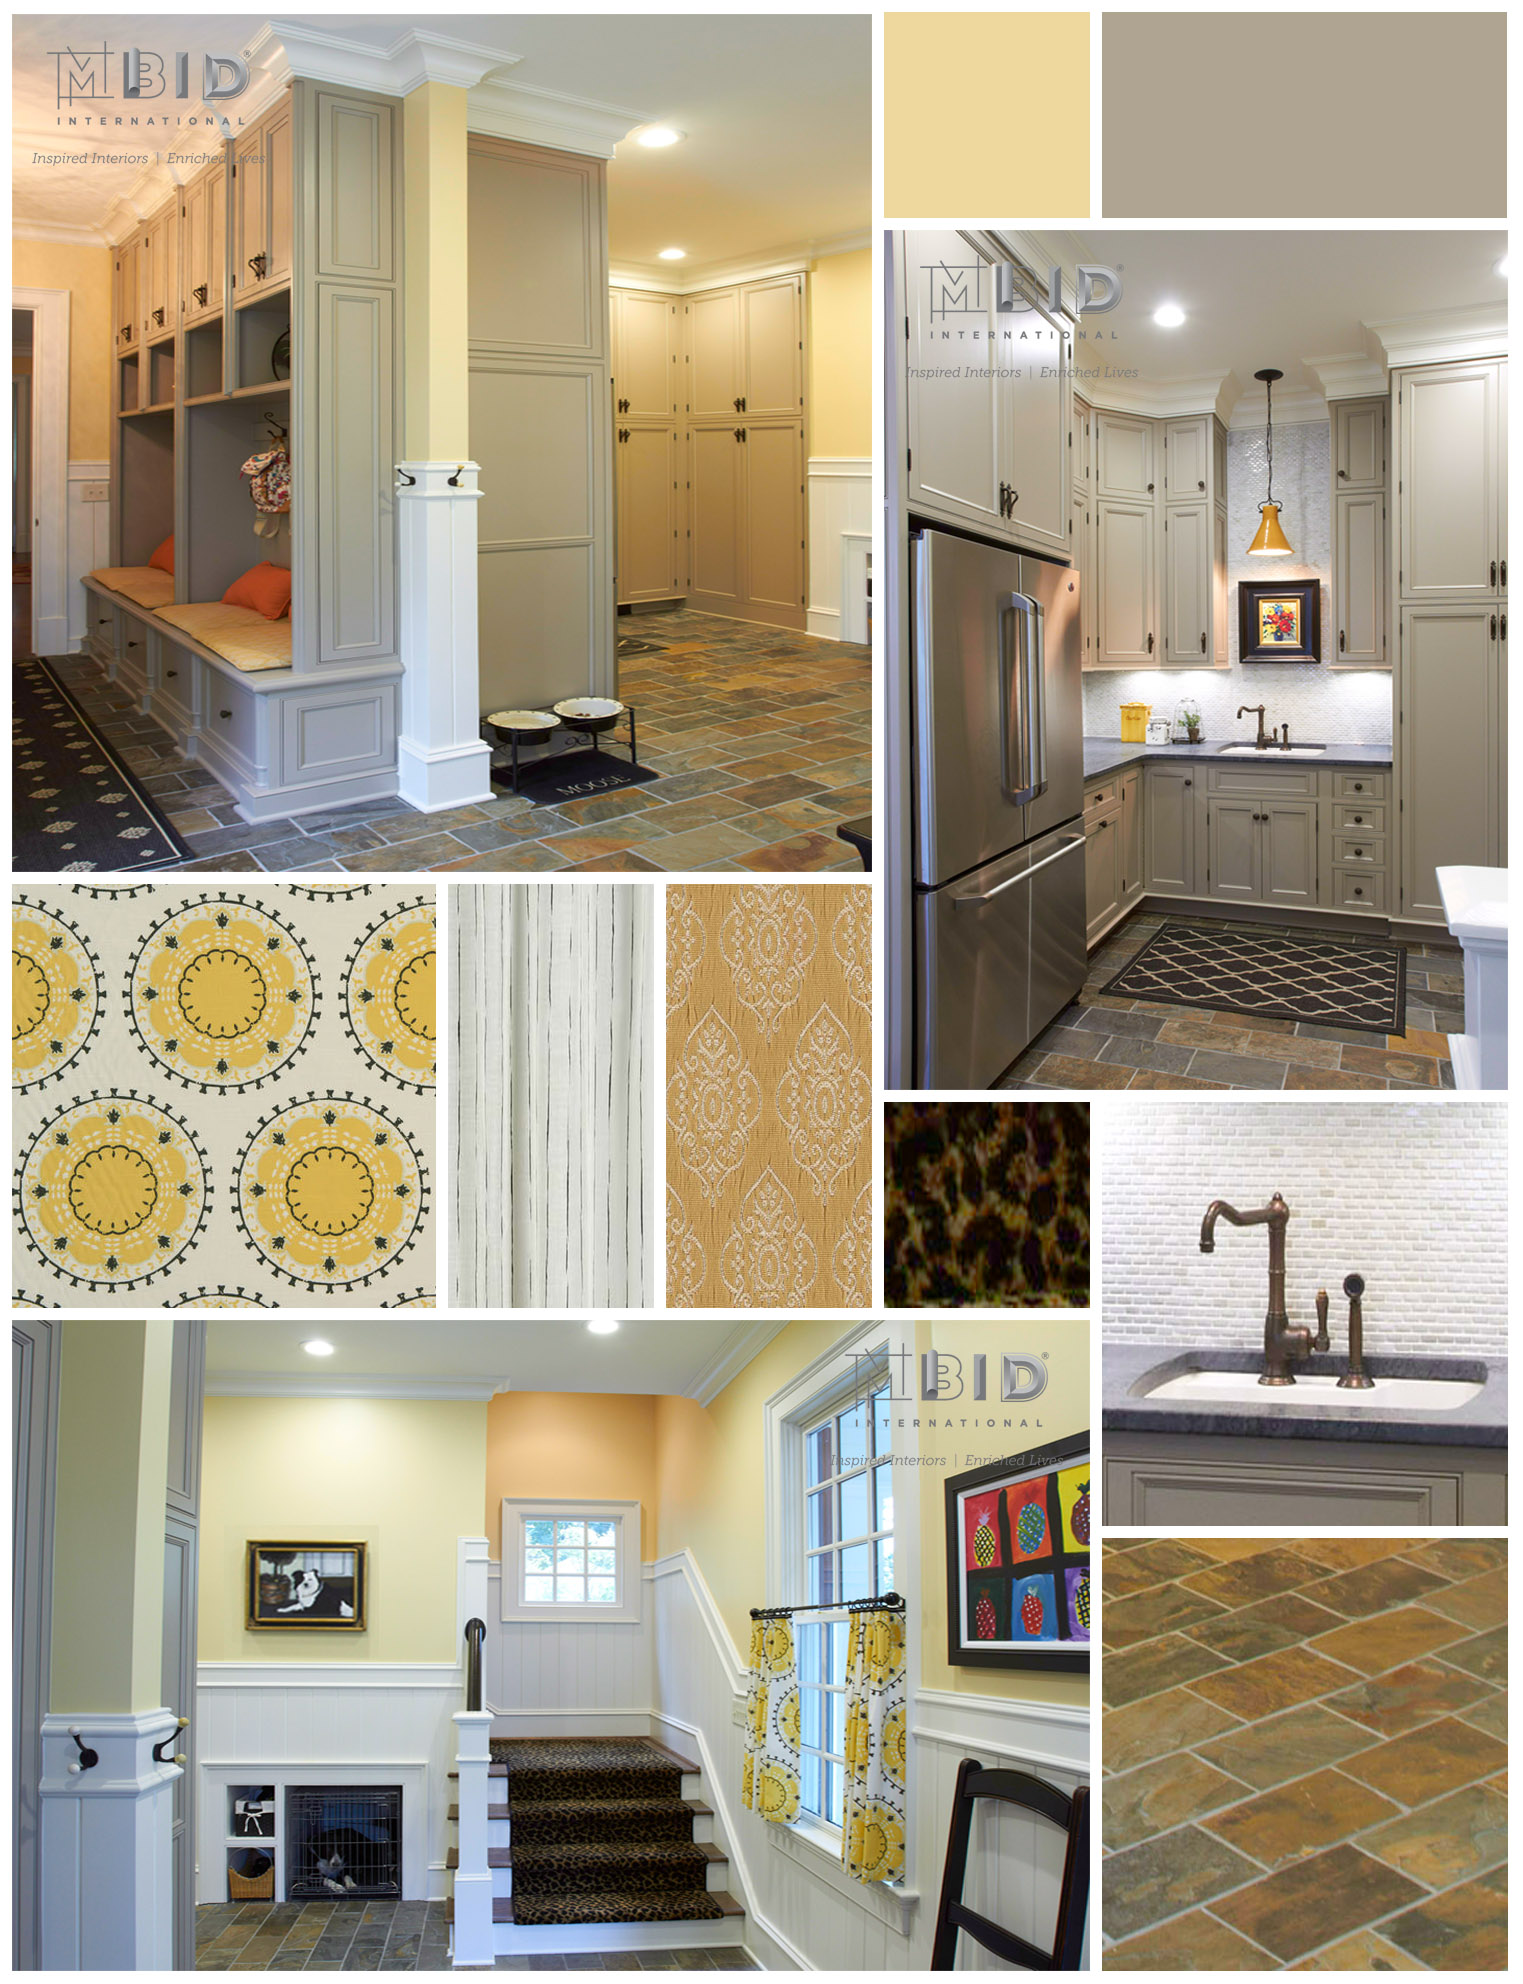 Cheerful Mudroom Interior Design Greensboro North Carolina Mbid International